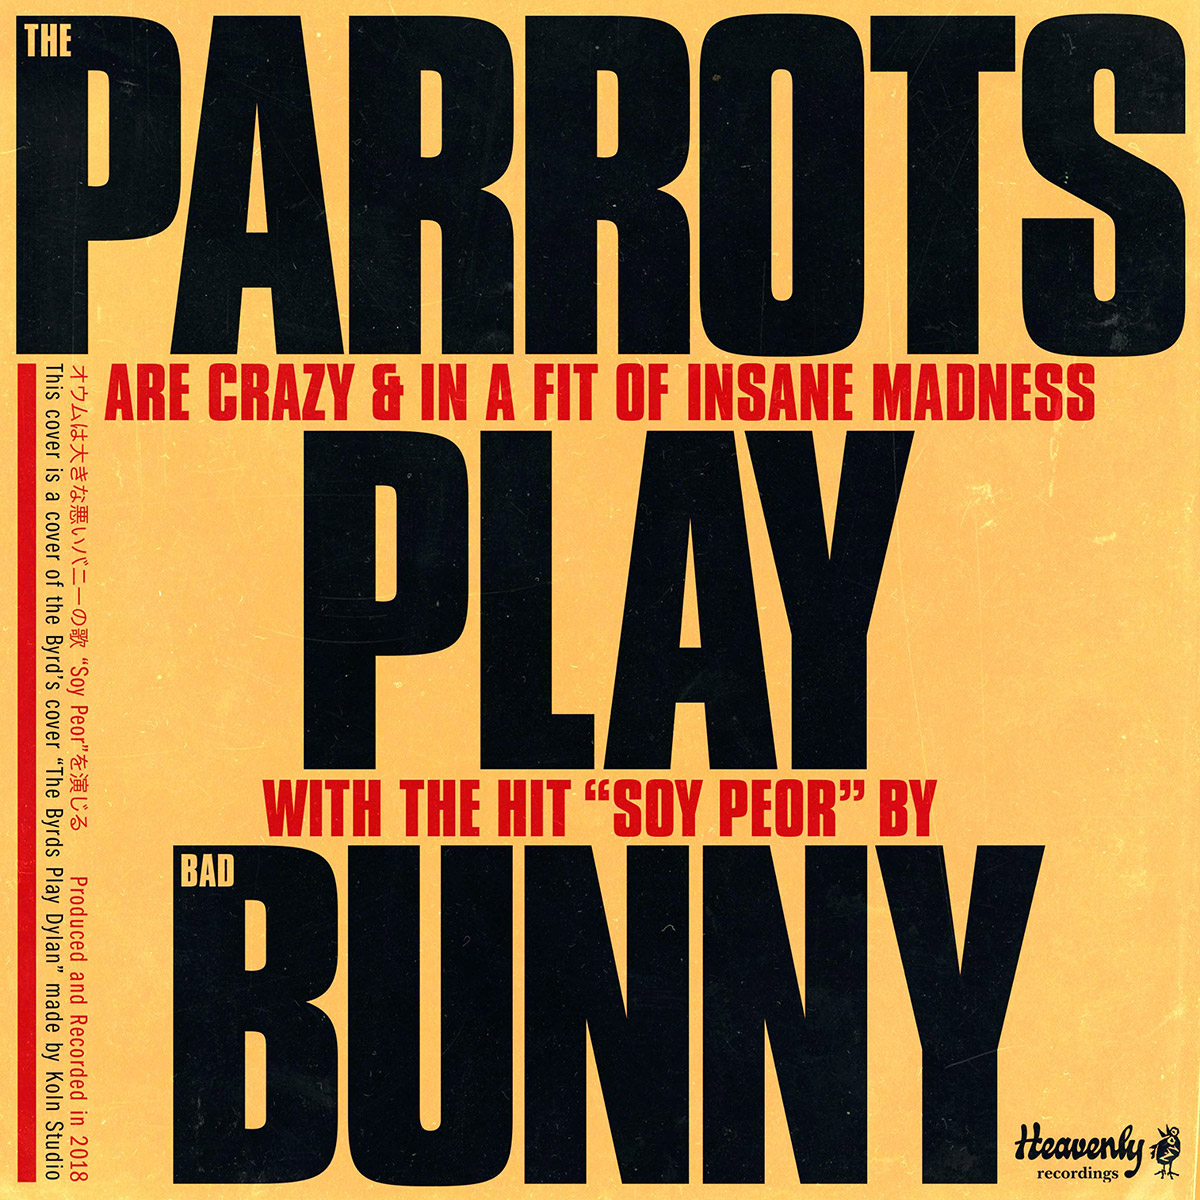 The Parrots - Play Bunny (Soy peor)